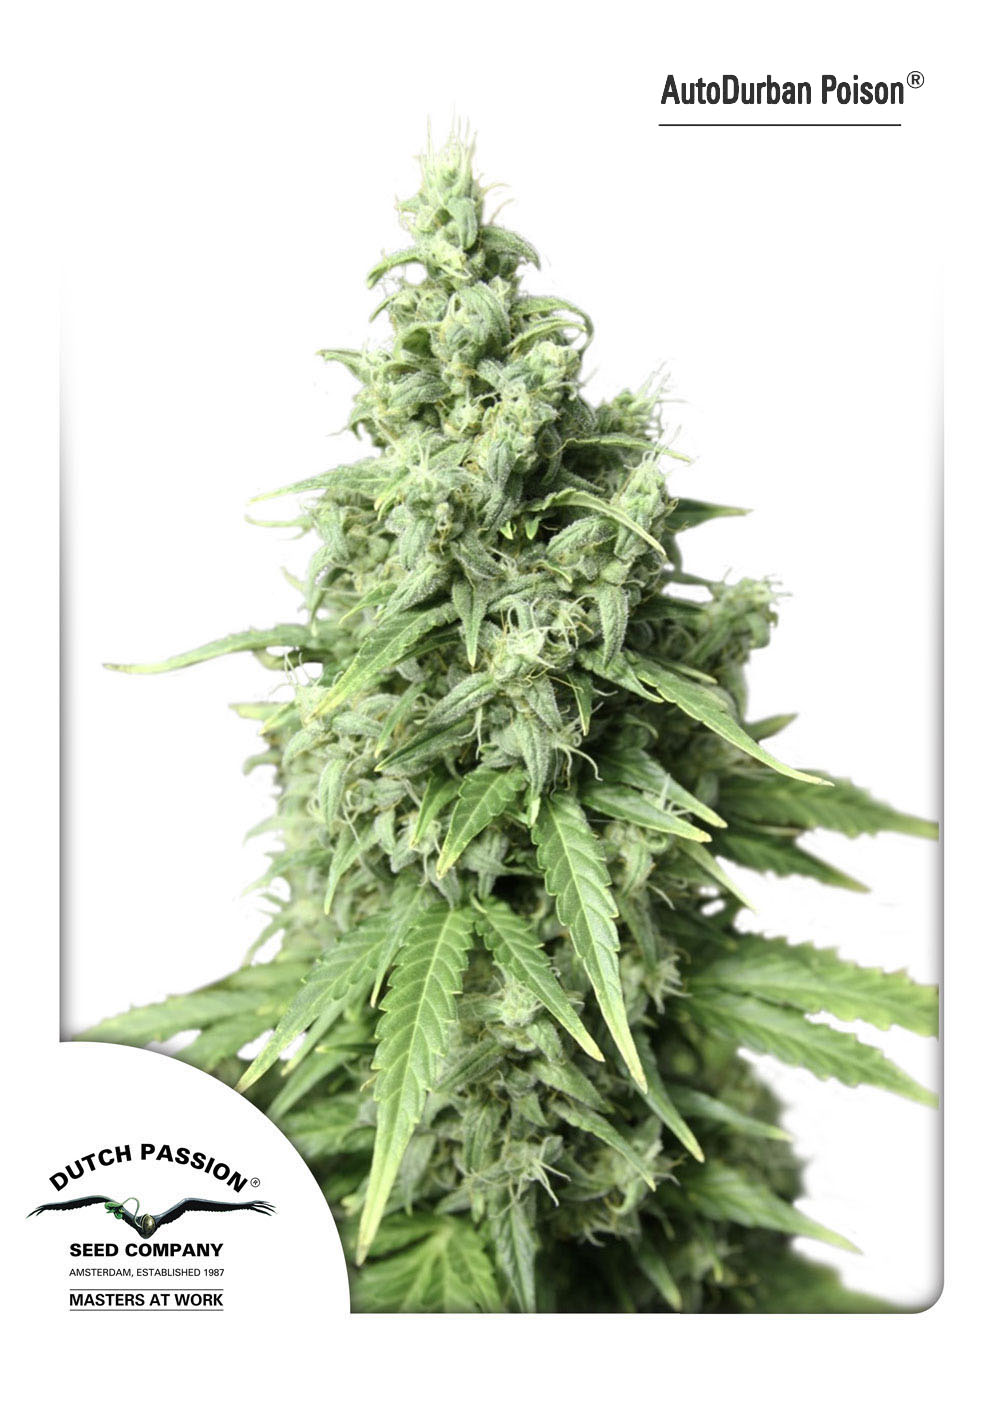 Recenzja Odmiany AutoDurban Poison od Dutch Passion, Dutch Seeds